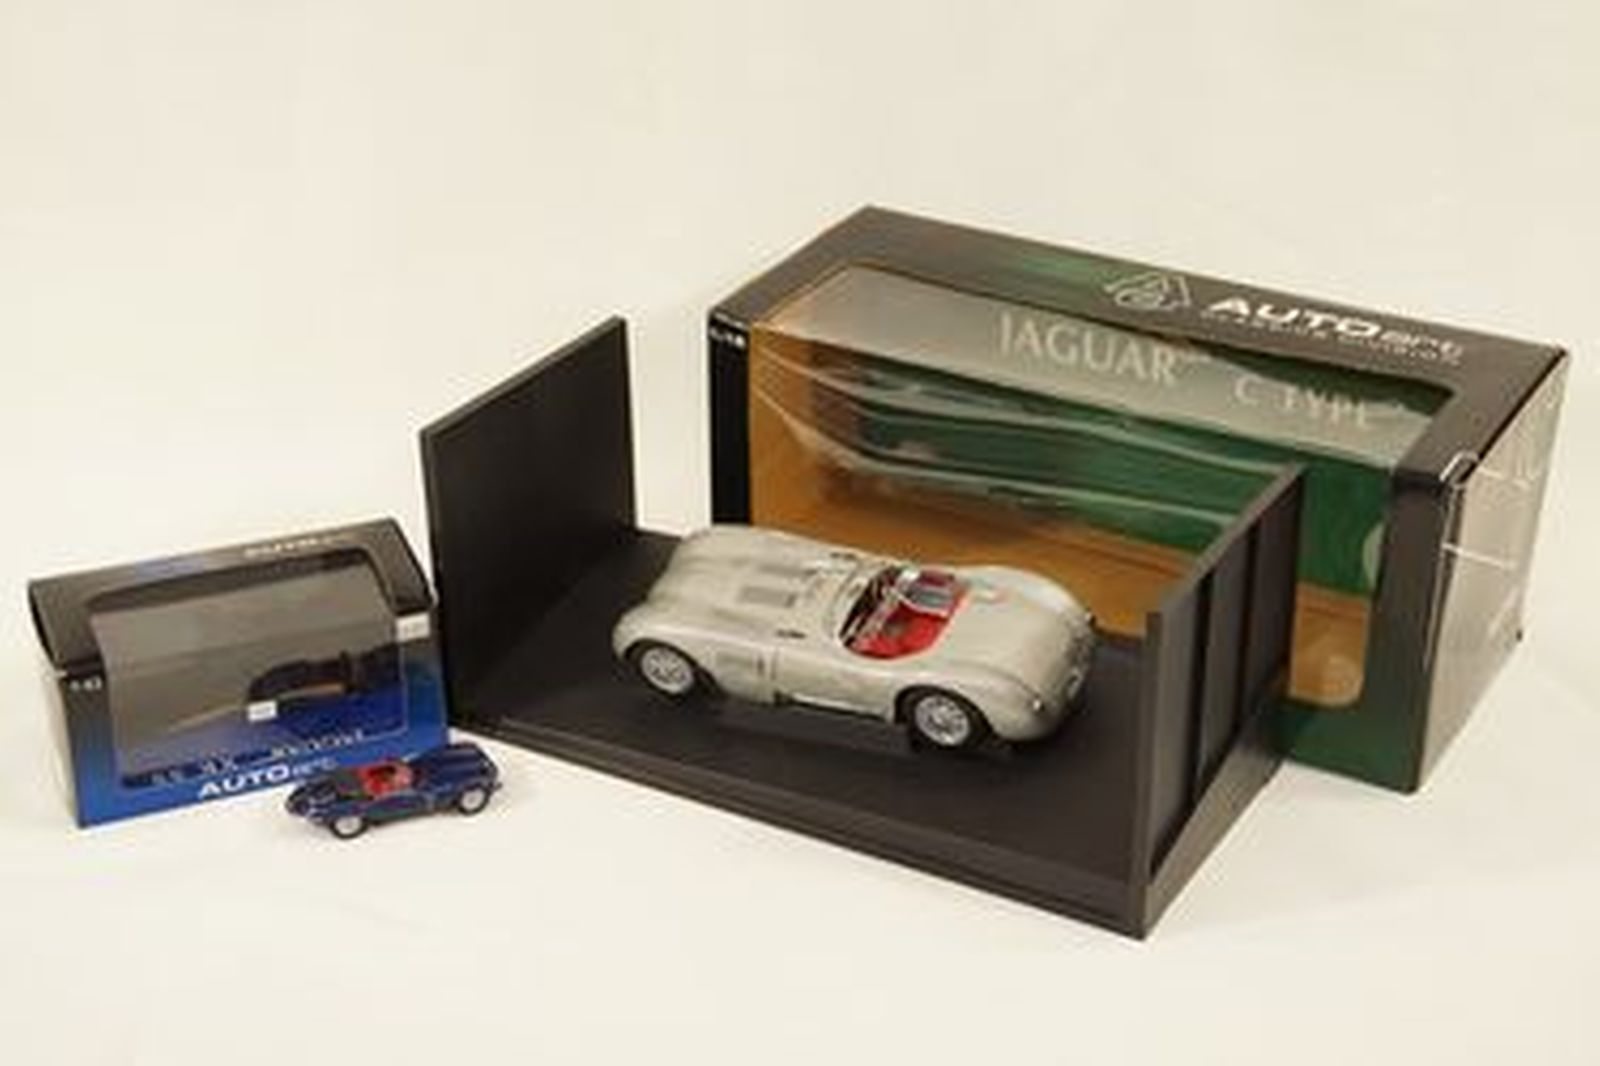 Model Cars x 2  - Autoart Jaguar C-Type Silver (1:18 scale) & XKSS Blue (1:43 scale) with boxes